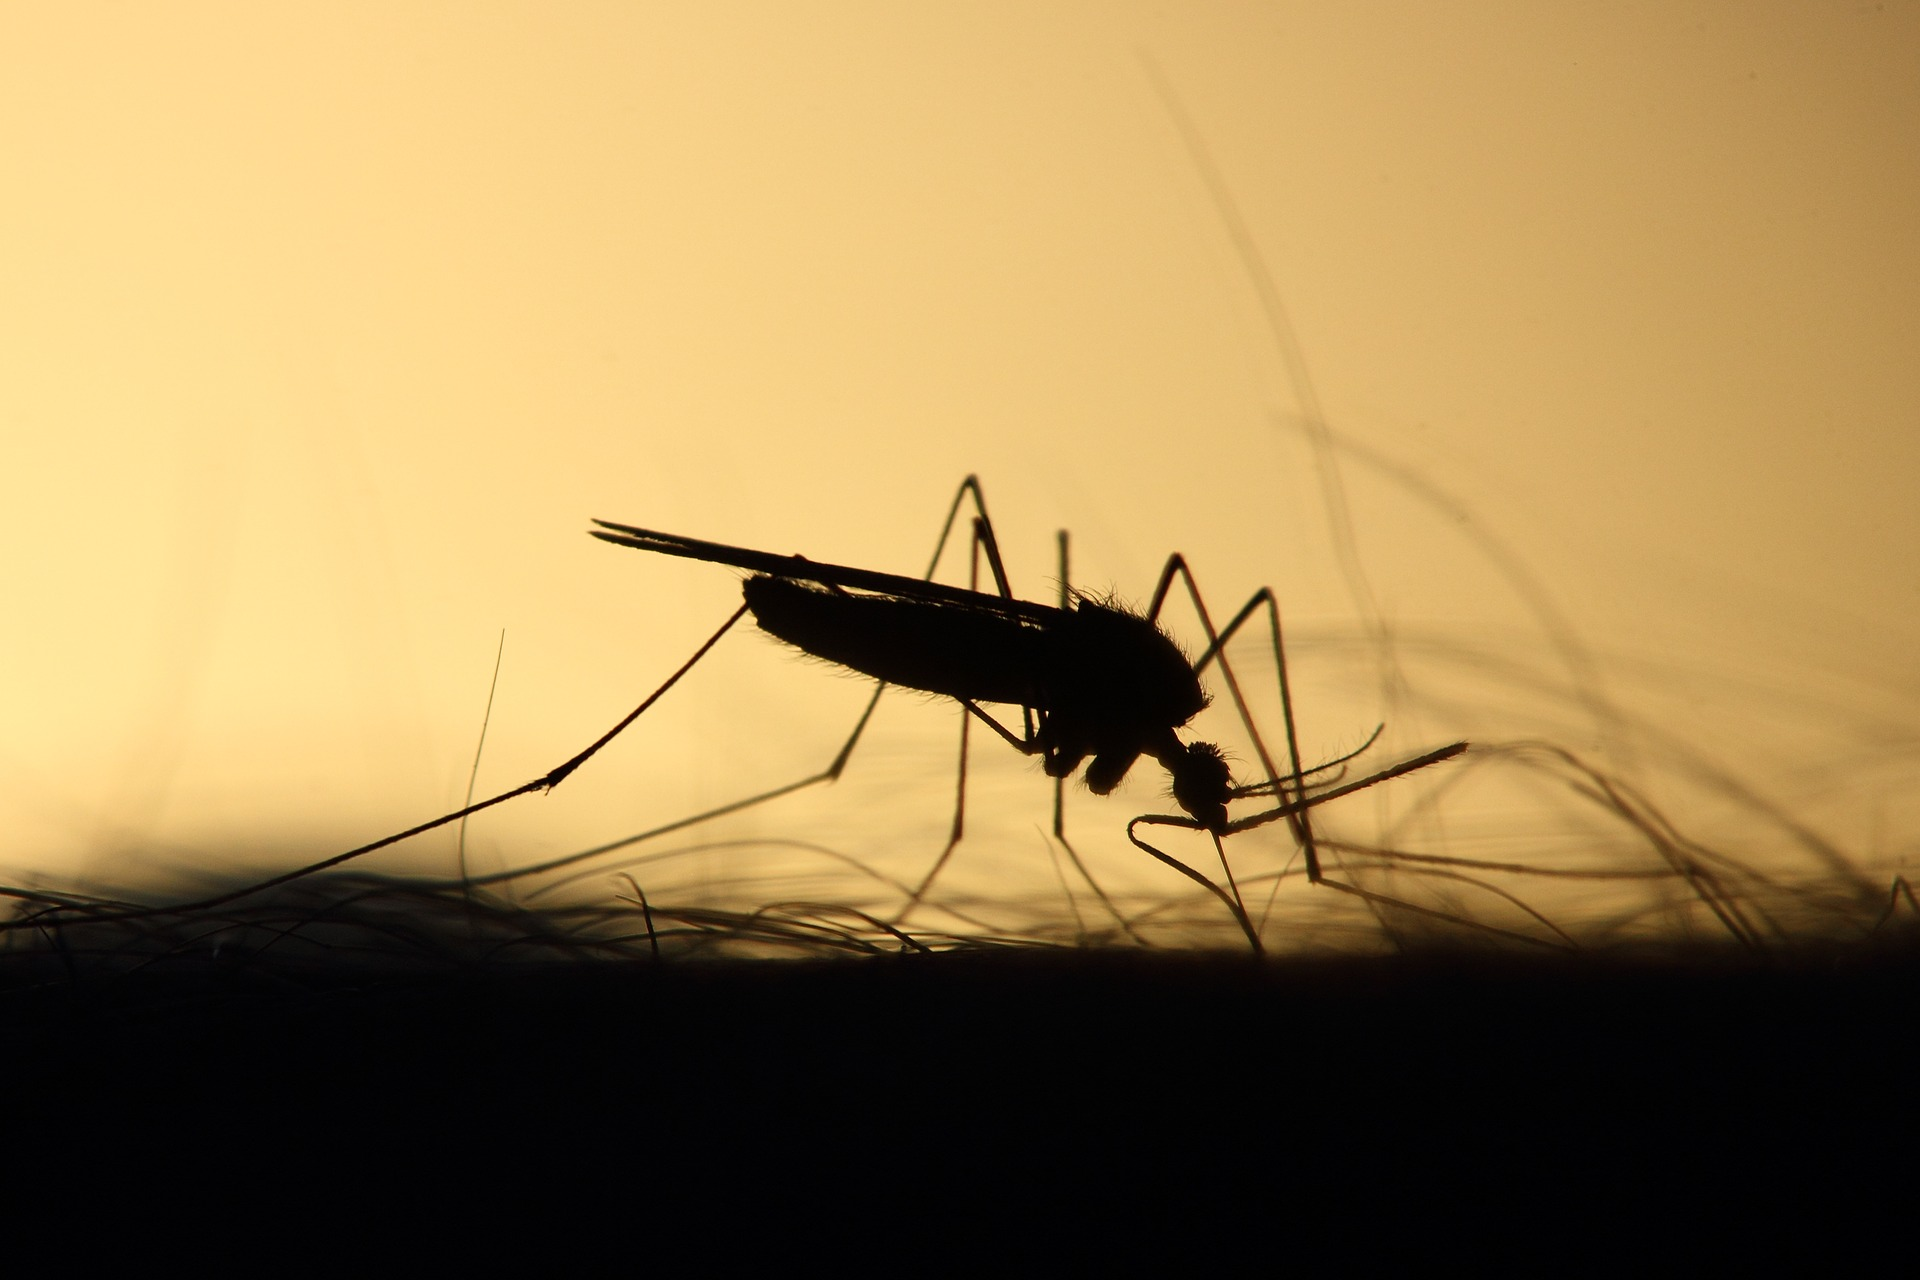 The number of deaths by mosquito are rising and as climate change signals longer breeding seasons for the insect, those numbers are going to increase.